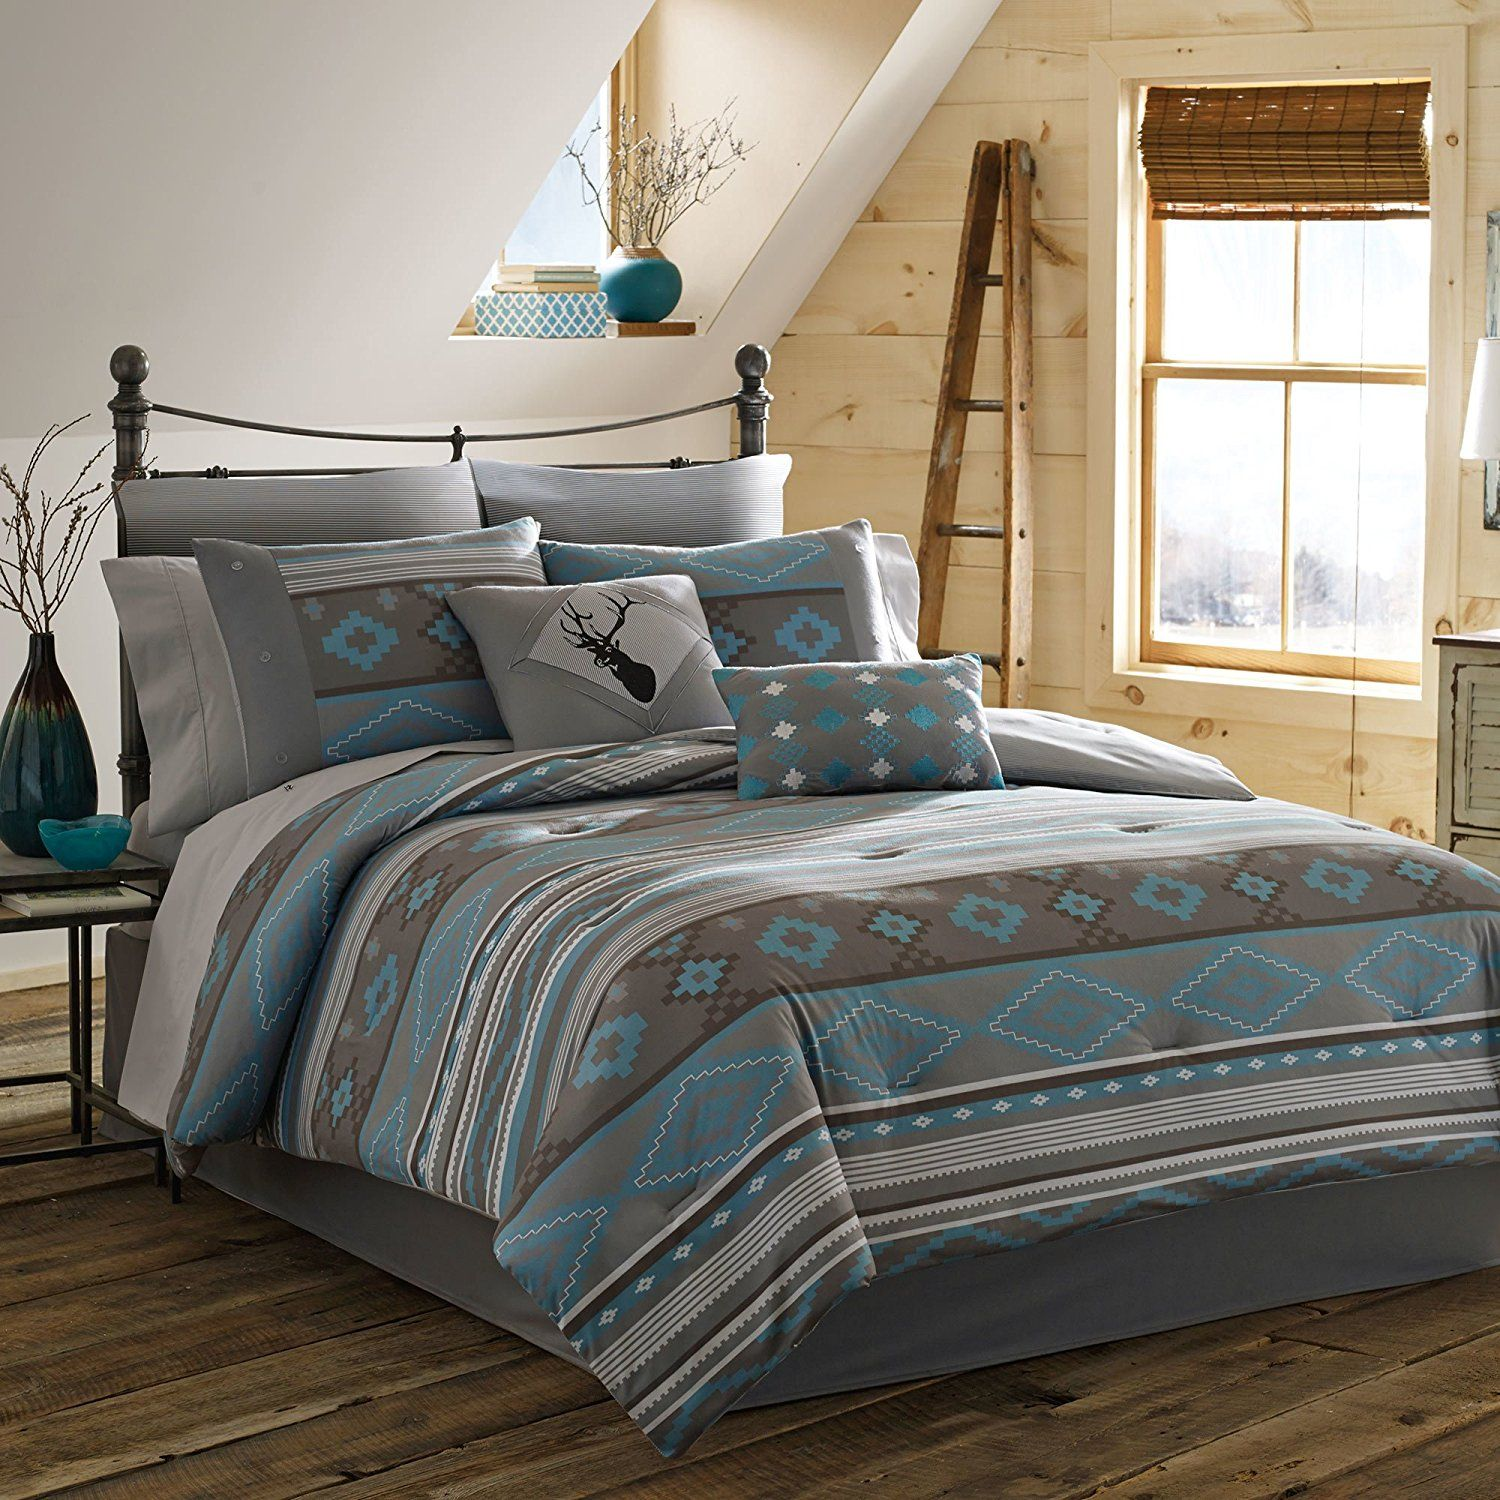 leather gold rustic rush bedding pin faux cabins cabin comforters western